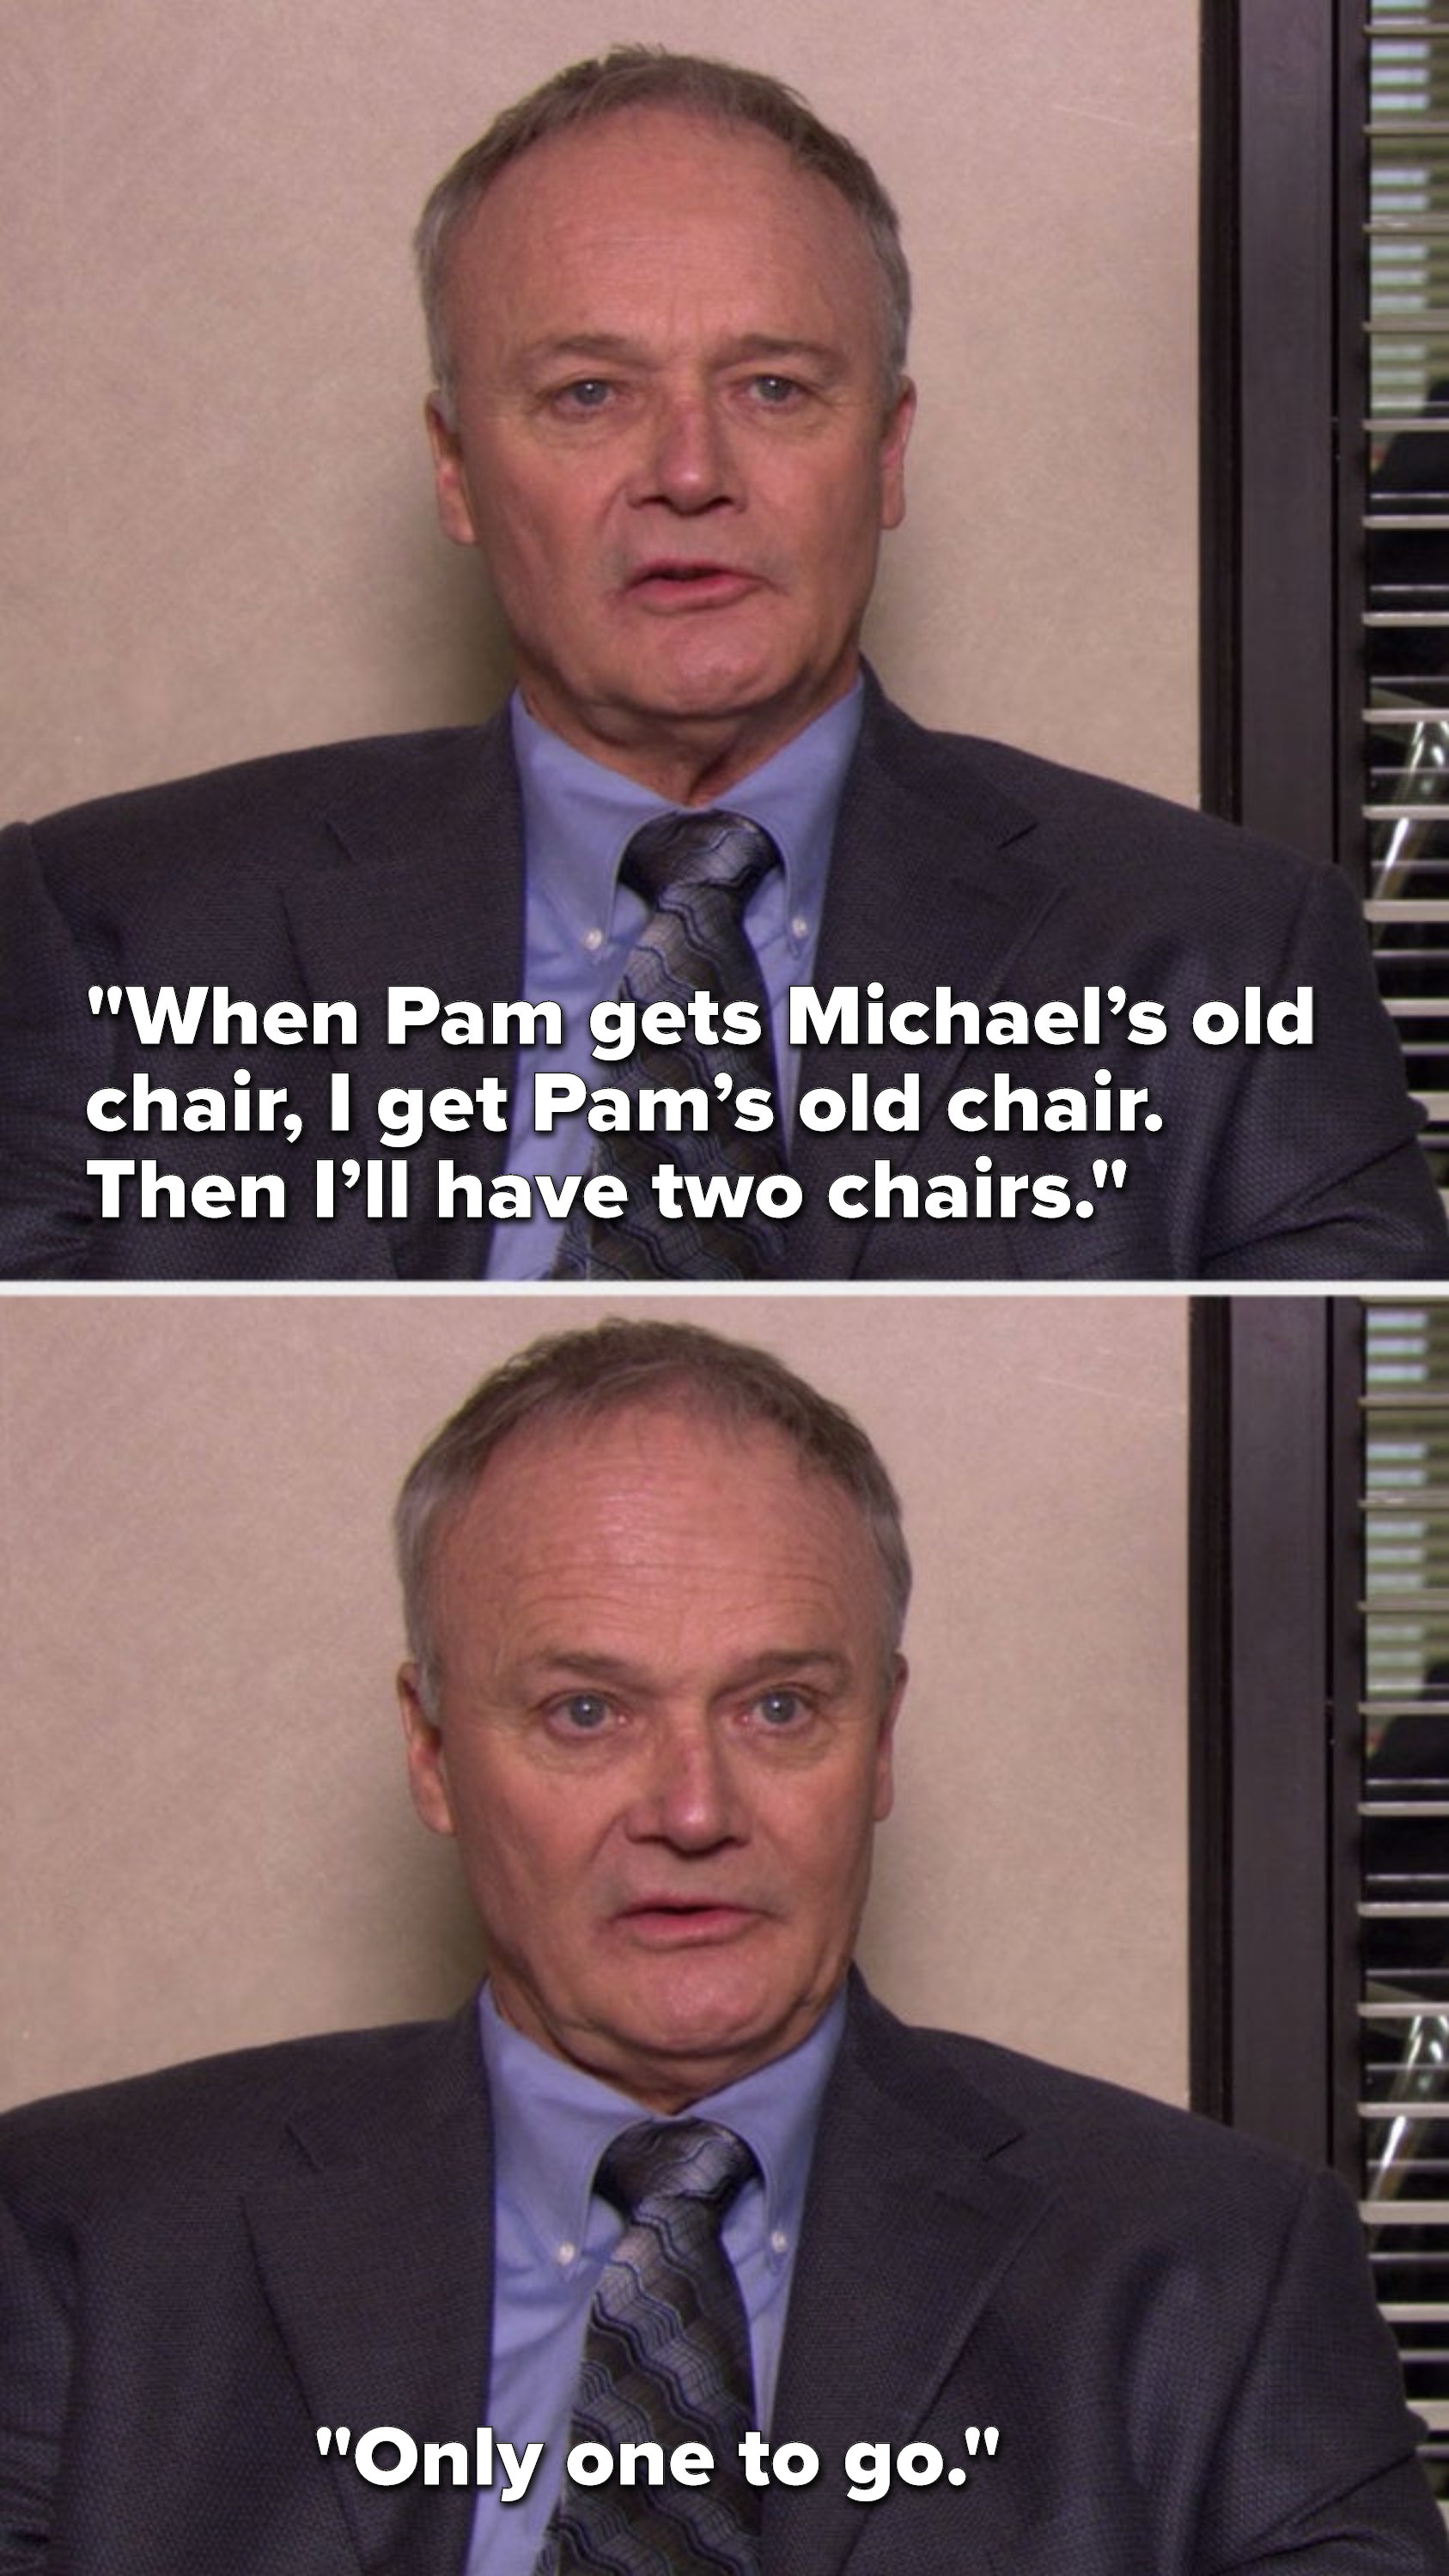 """Creed says, """"When Pam gets Michael's old chair, I get Pam's old chair. Then I'll have two chairs. Only one to go."""""""